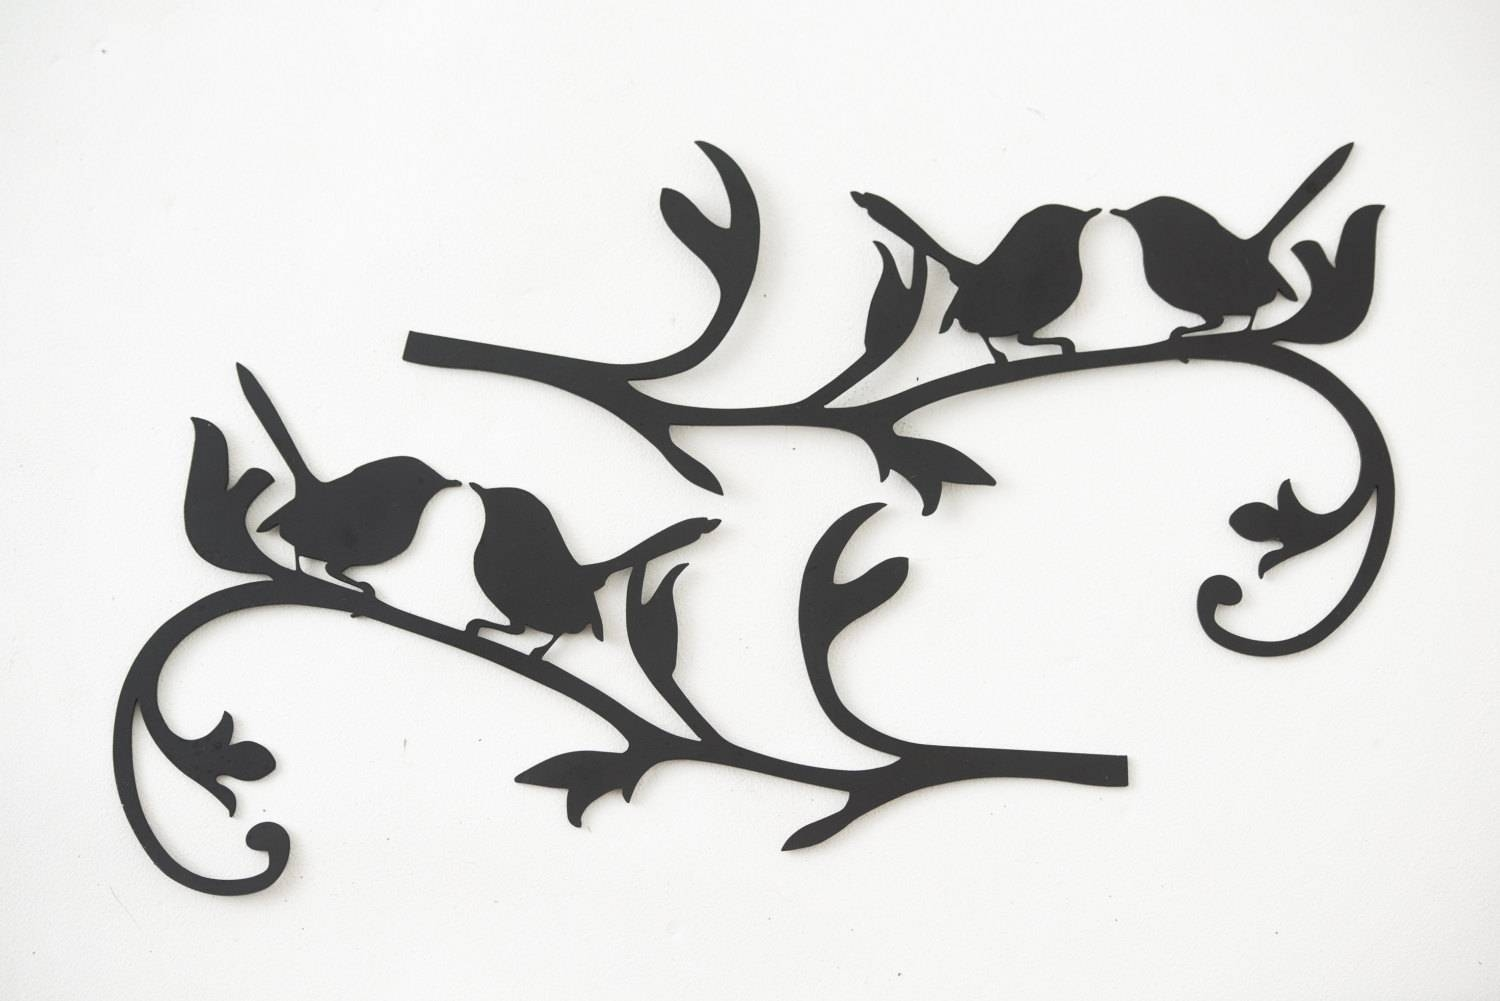 Wall Art Designs: Metal Bird Wall Art Hand Drawn And Laser Cut Throughout Latest Flying Birds Metal Wall Art (View 15 of 25)